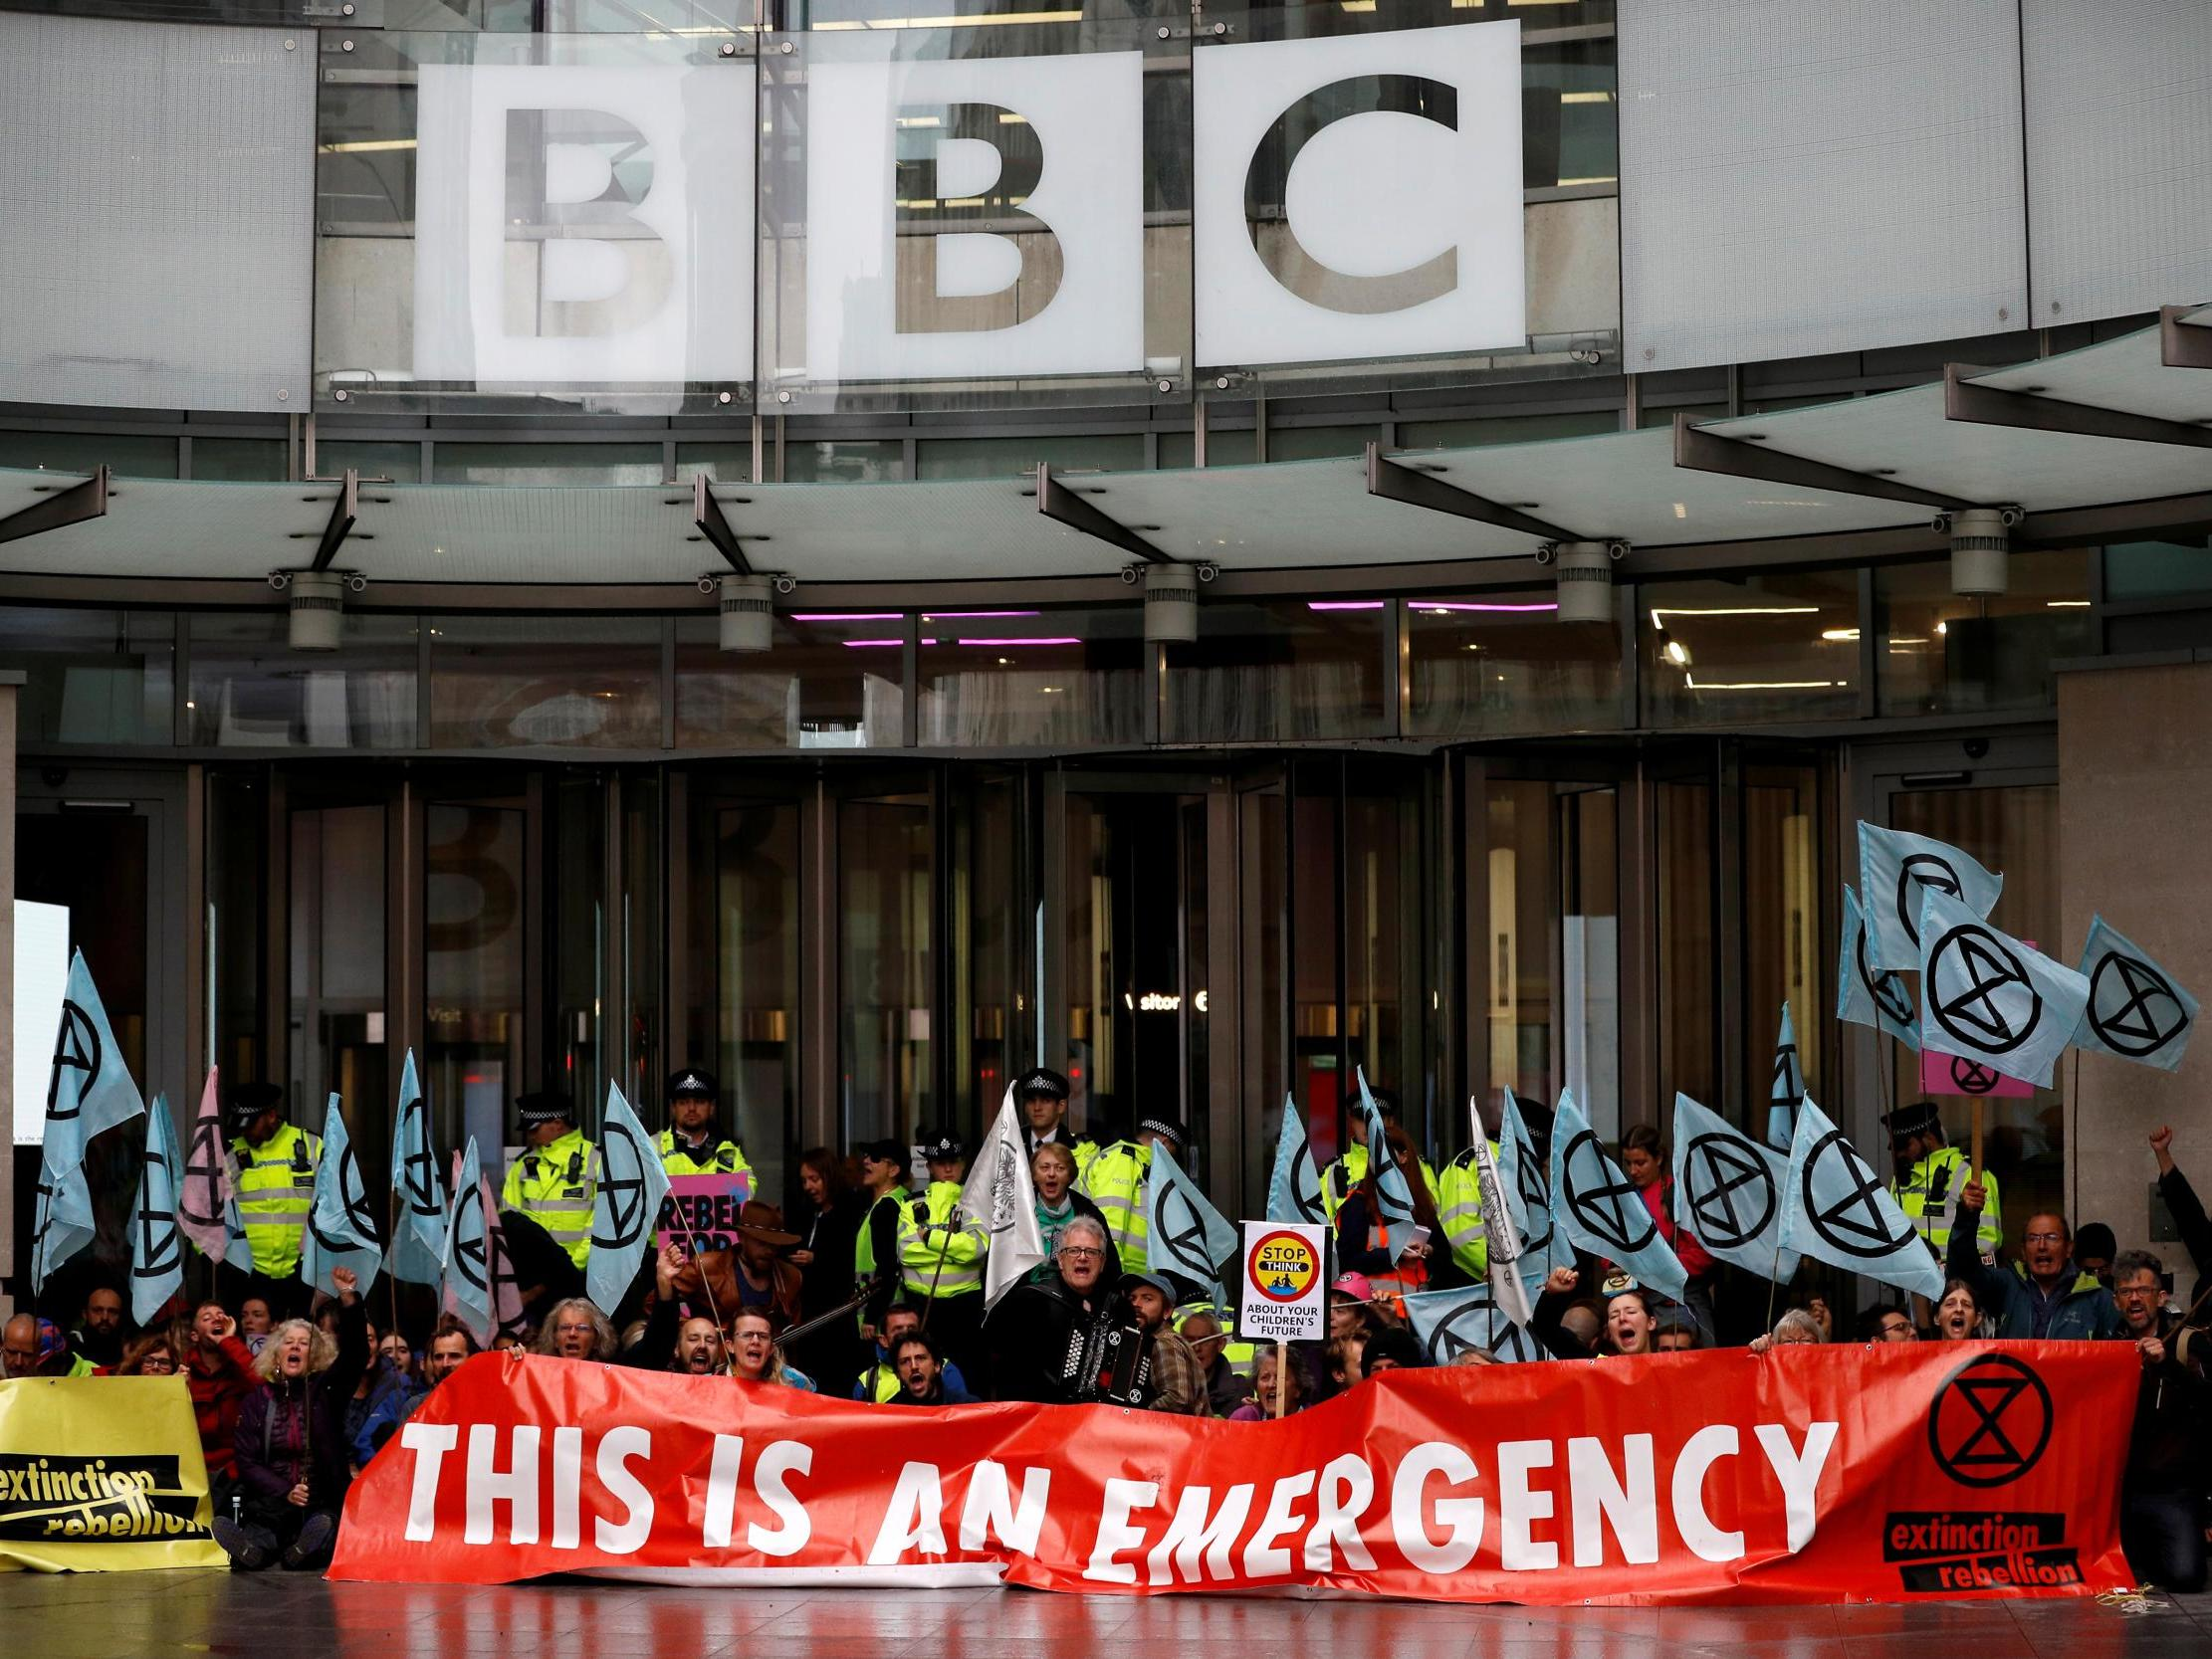 Extinction Rebellion protests: Climate activists blockade BBC offices as police chief attacks 'chaos' on London streets